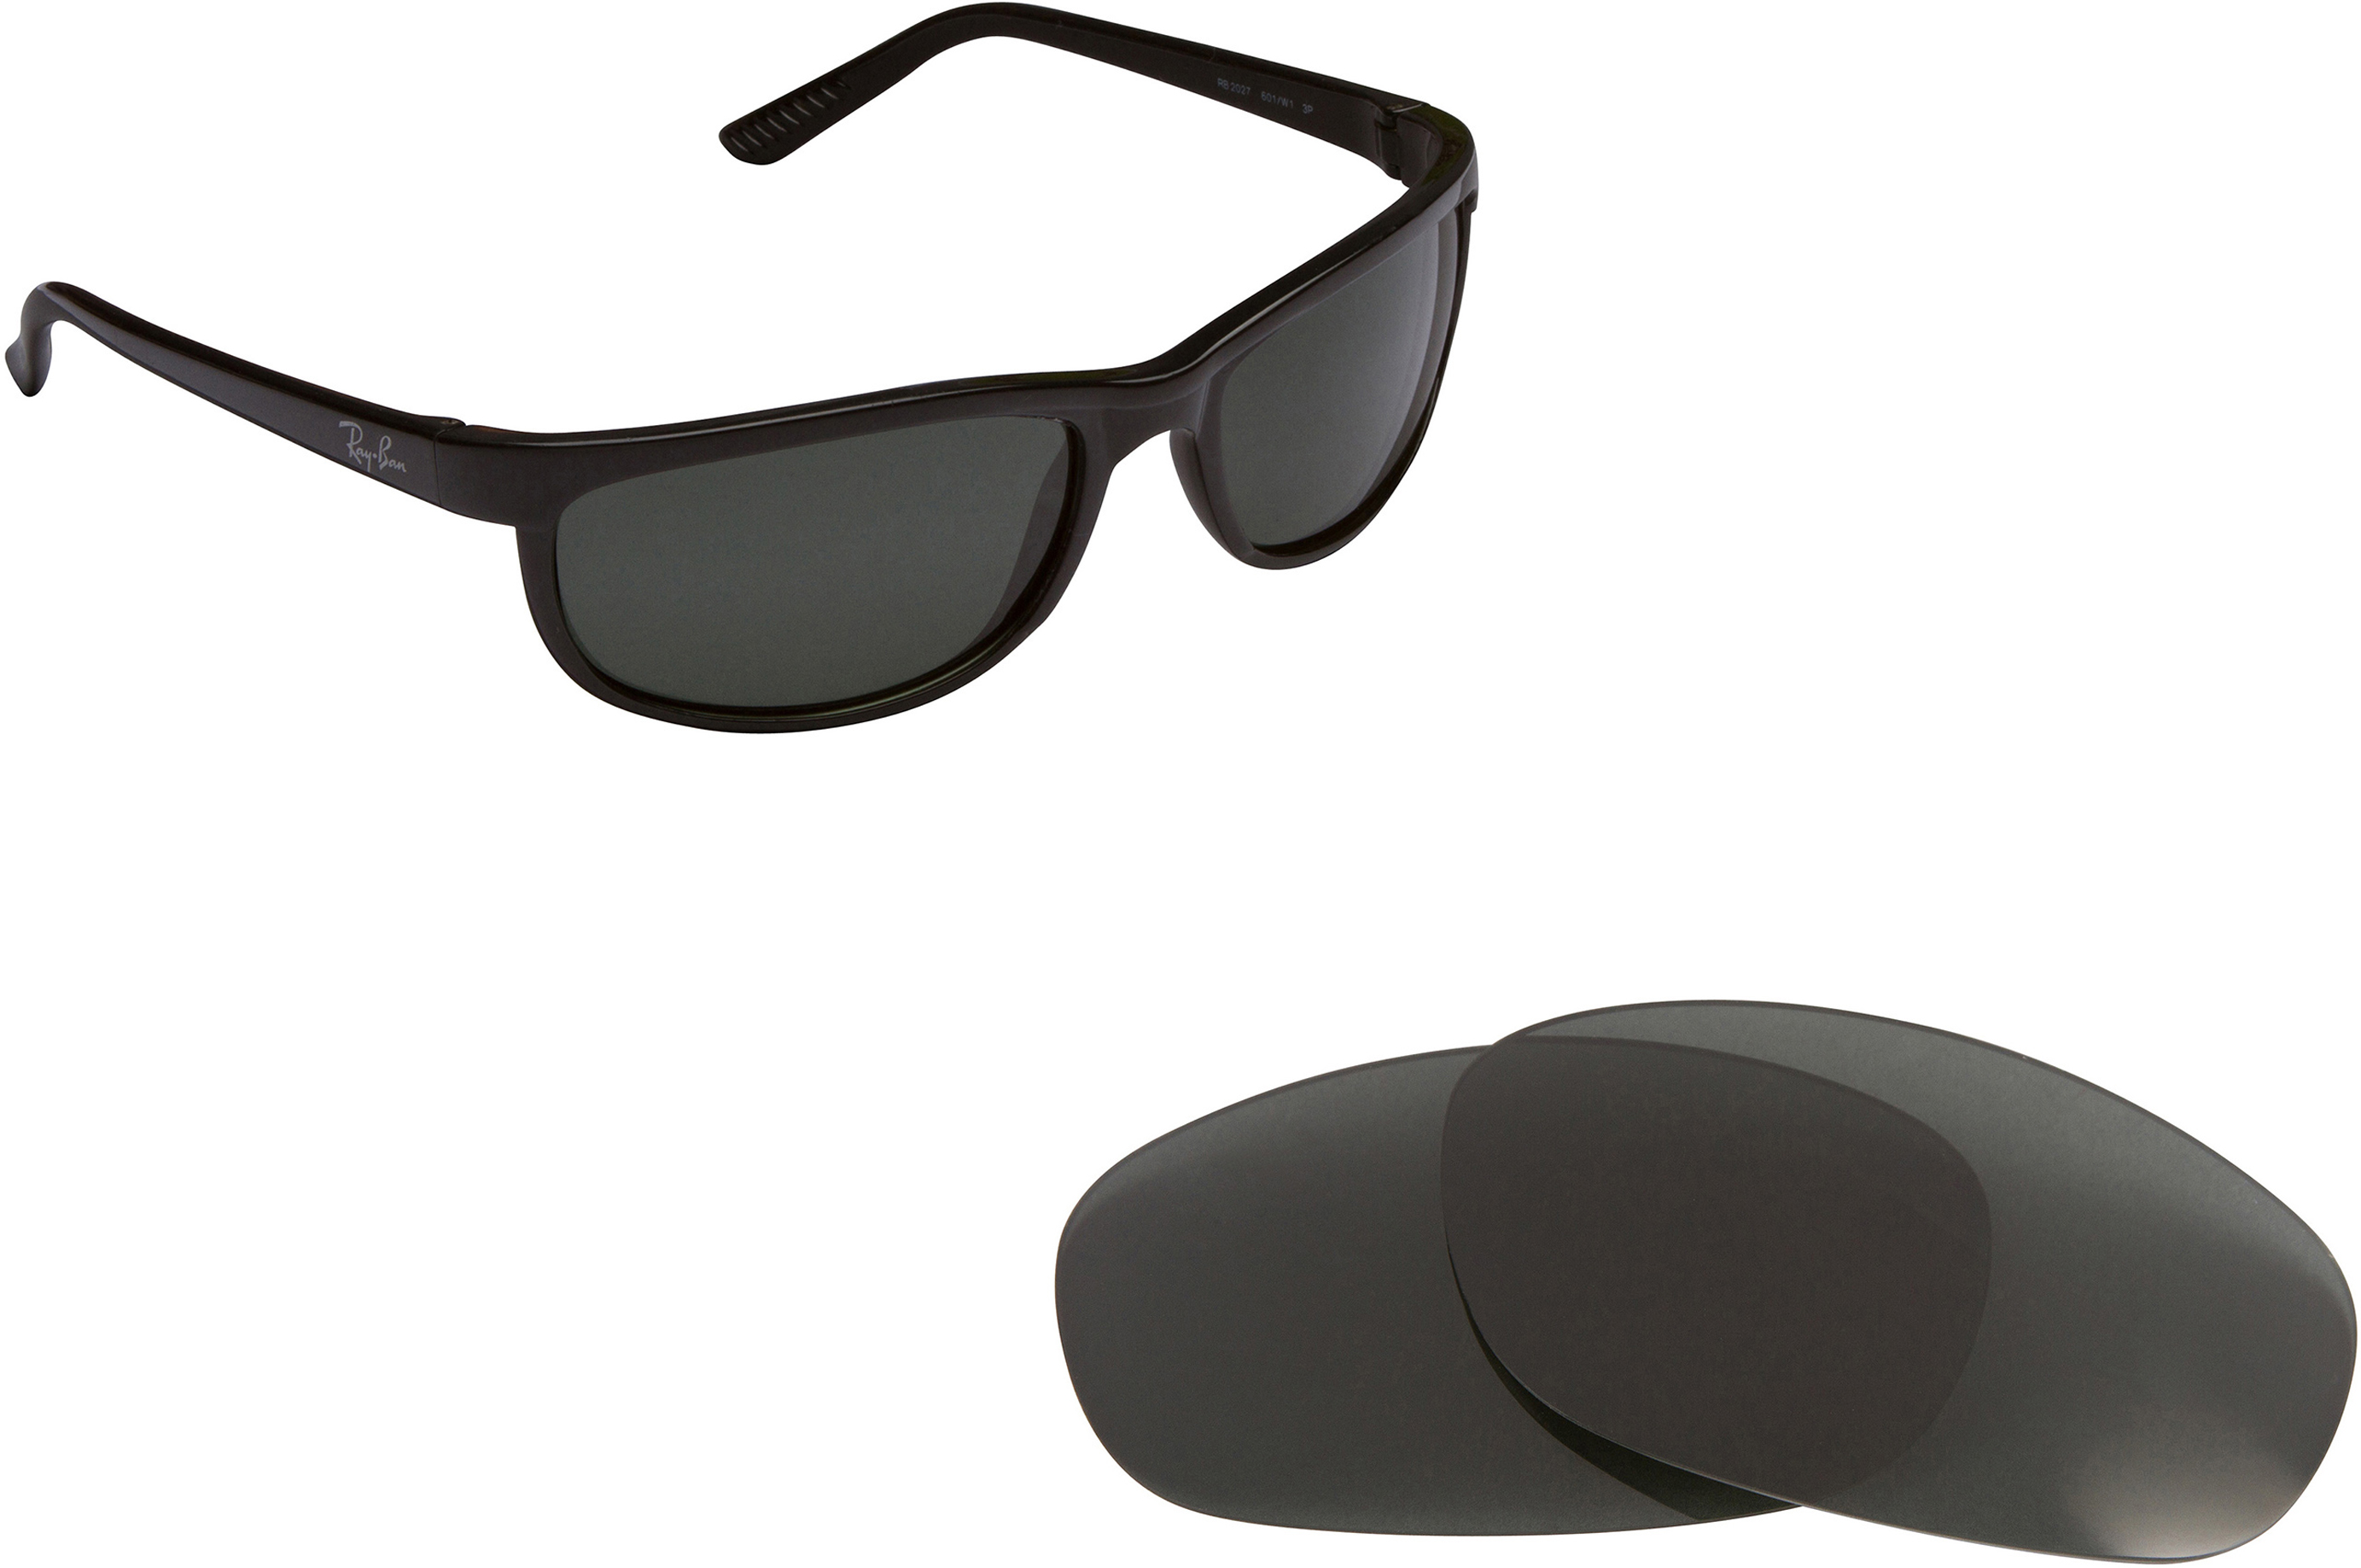 0e237d4e56 RB Predator 2027 Replacement Lenses by SEEK OPTICS to fit RAY BAN ...